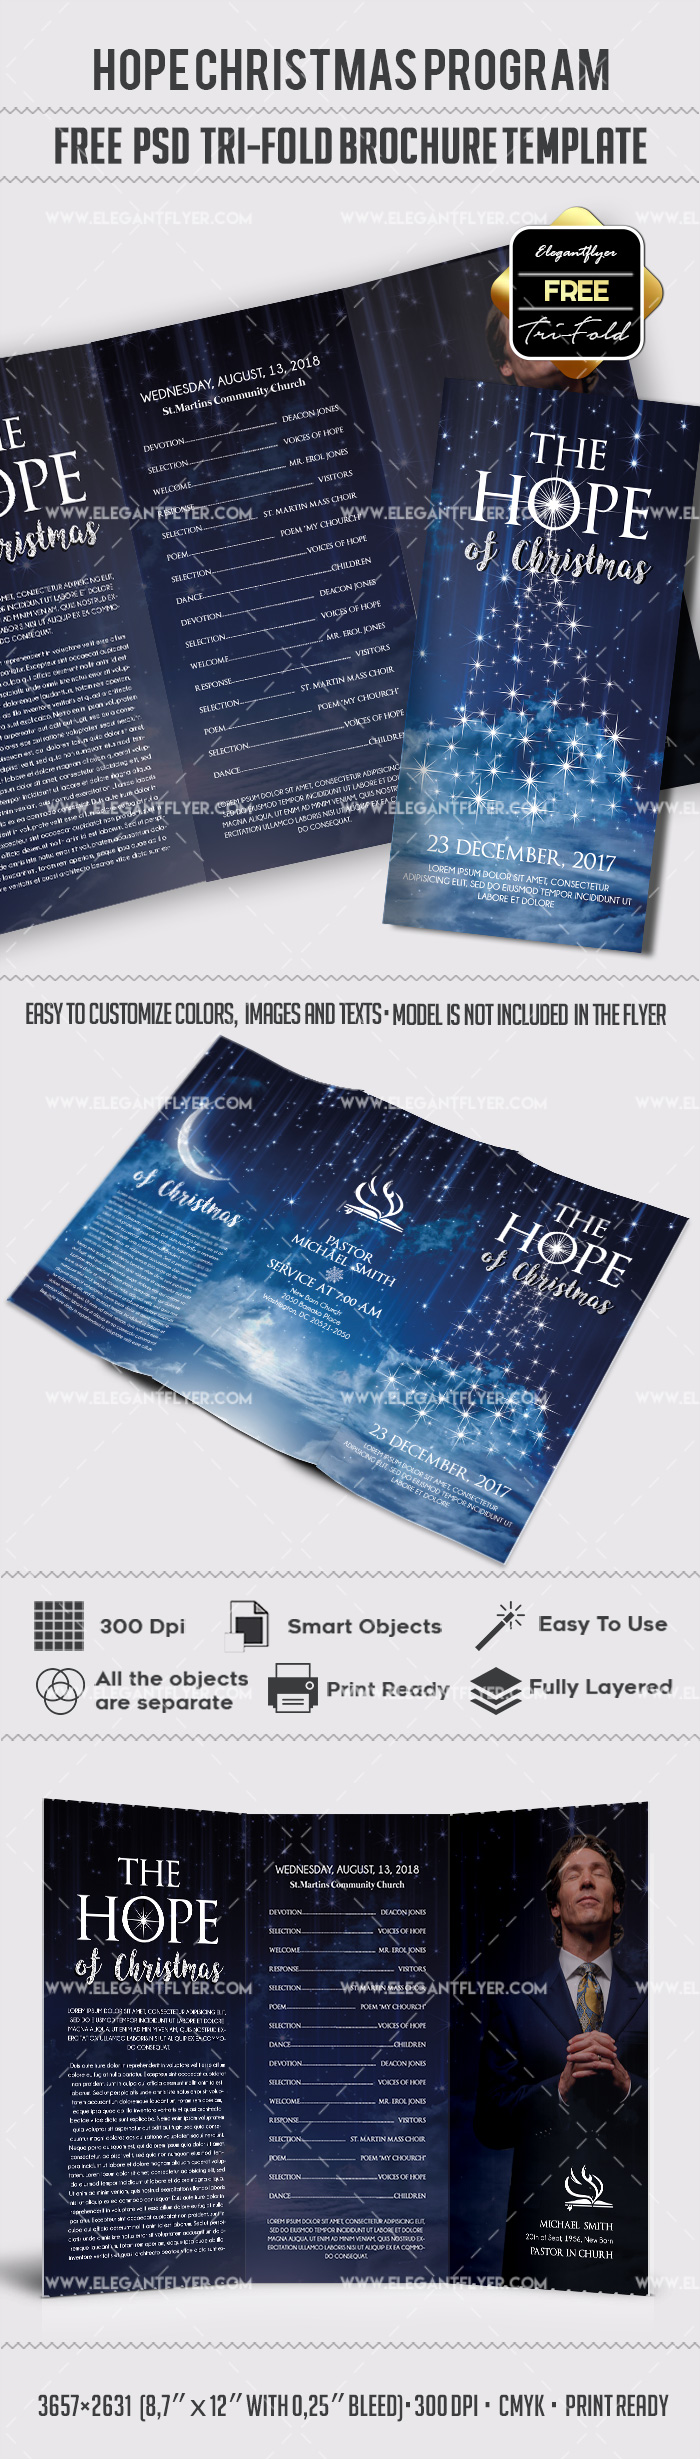 Free Hope Christmas PSD Brochure